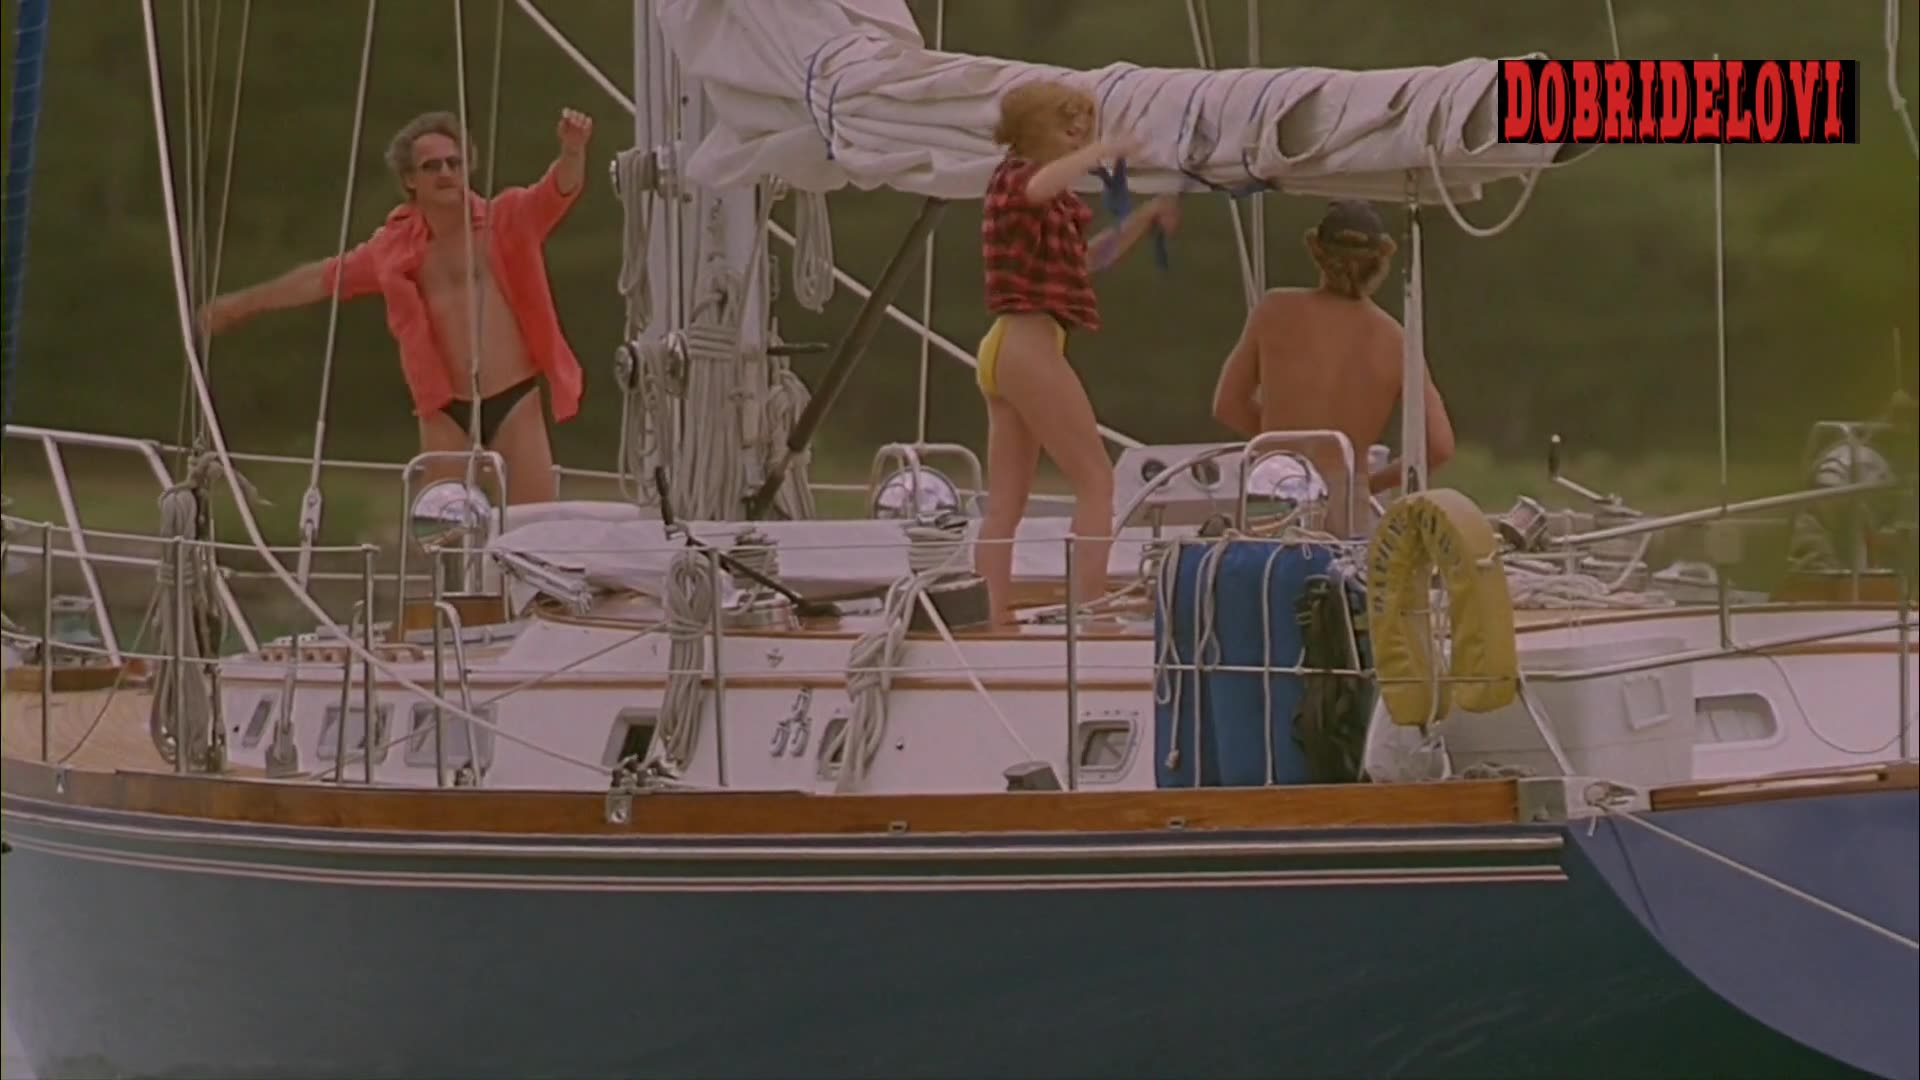 Kim Cattrall sexy on boat scene from Midnight Crossing